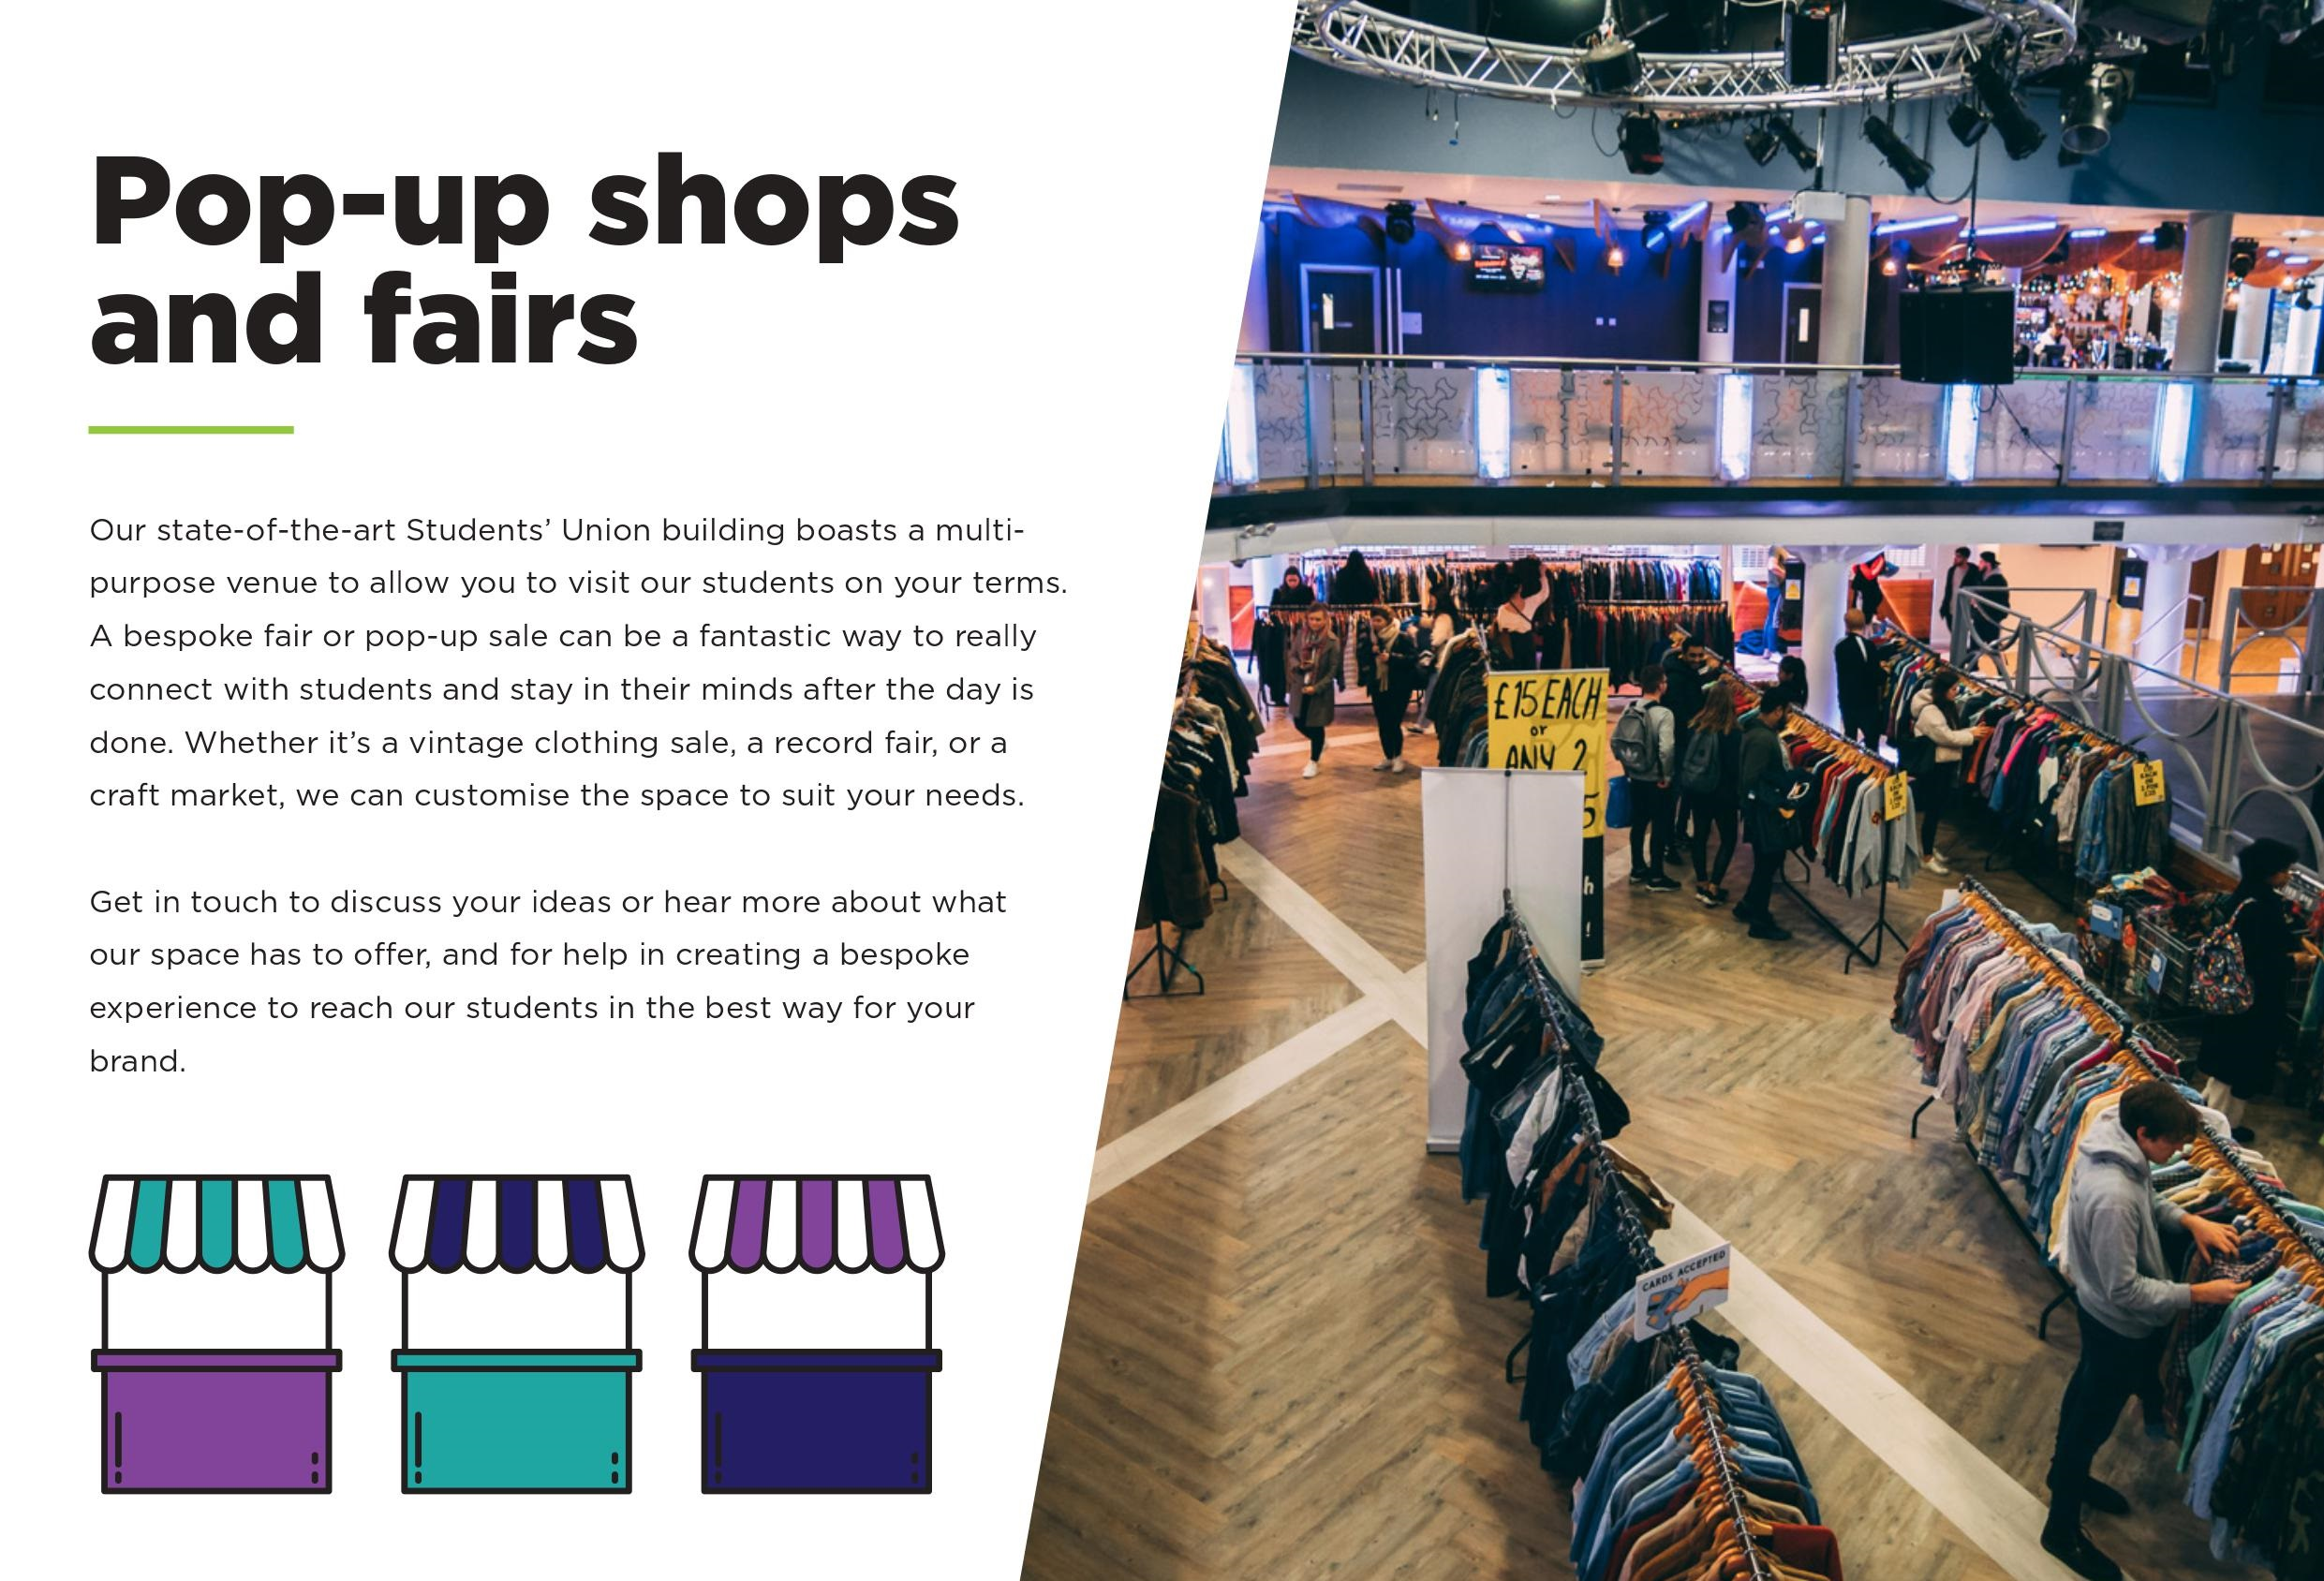 Popup shops and fairs